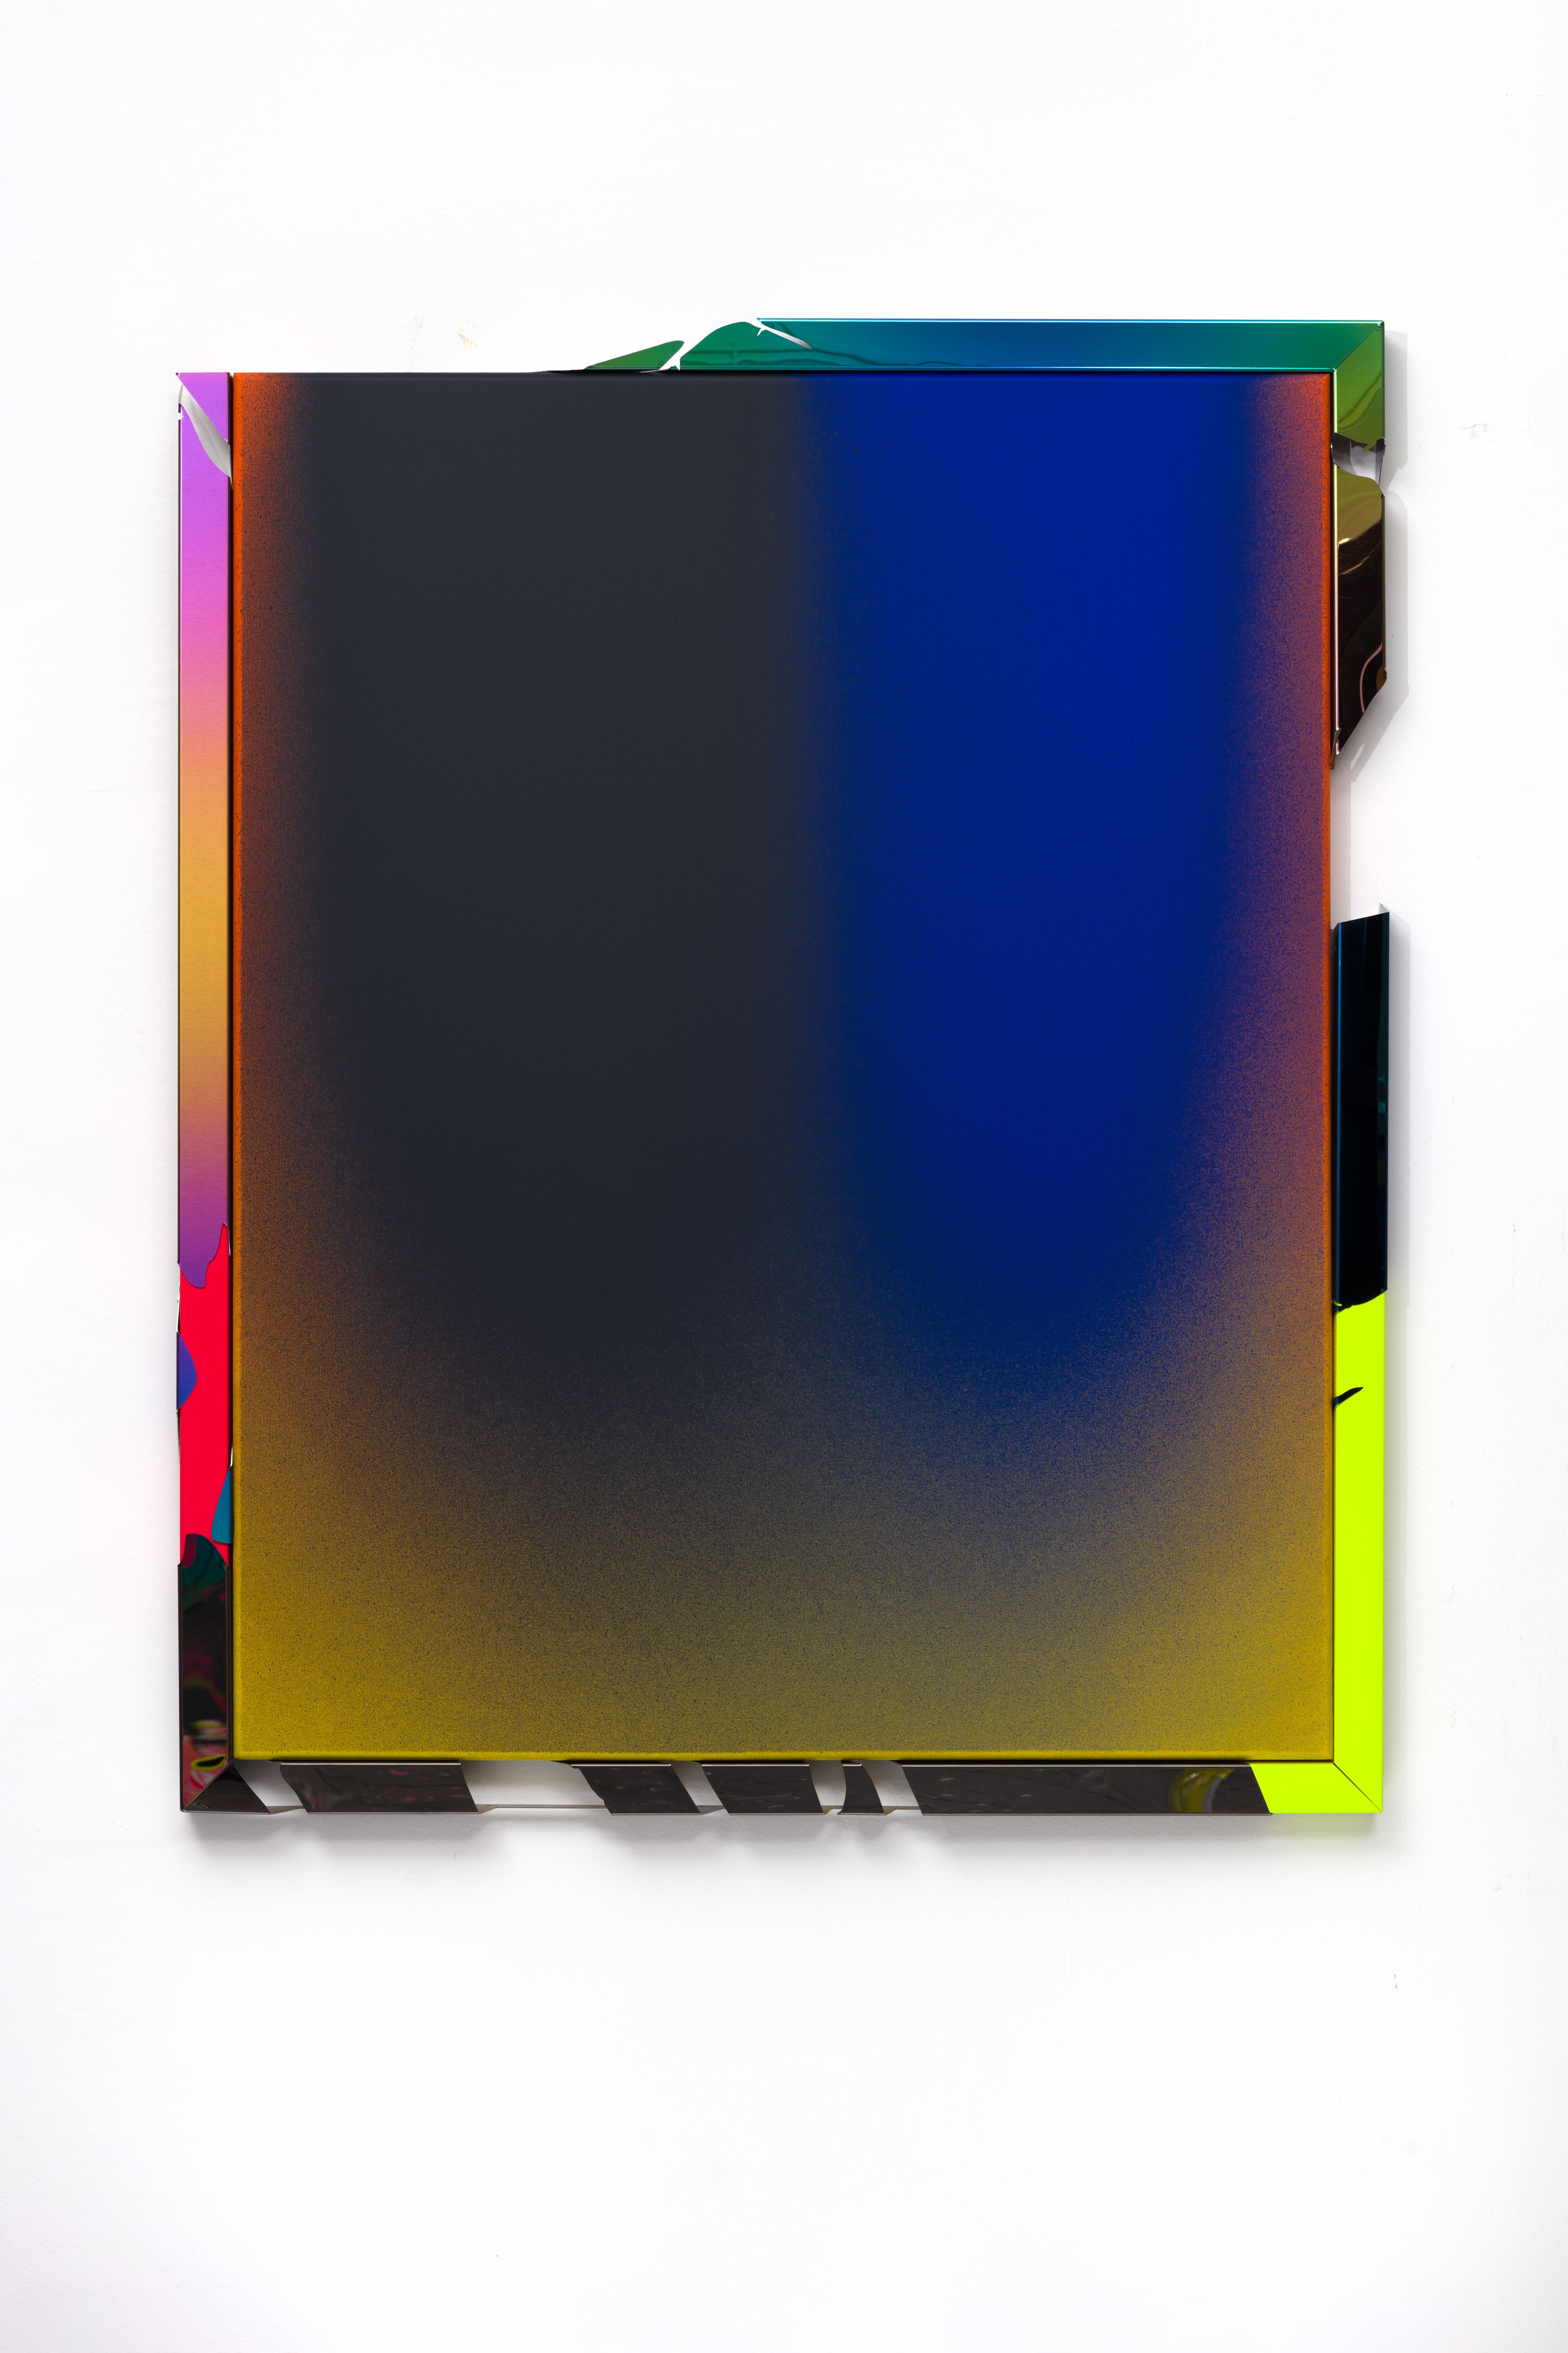 NemesM_Silence-Paintings-02_2021_129x99cm_PVD-coated-stainless-steel-powder-coated-stainless-steel-acrylic-canvas-wood-min